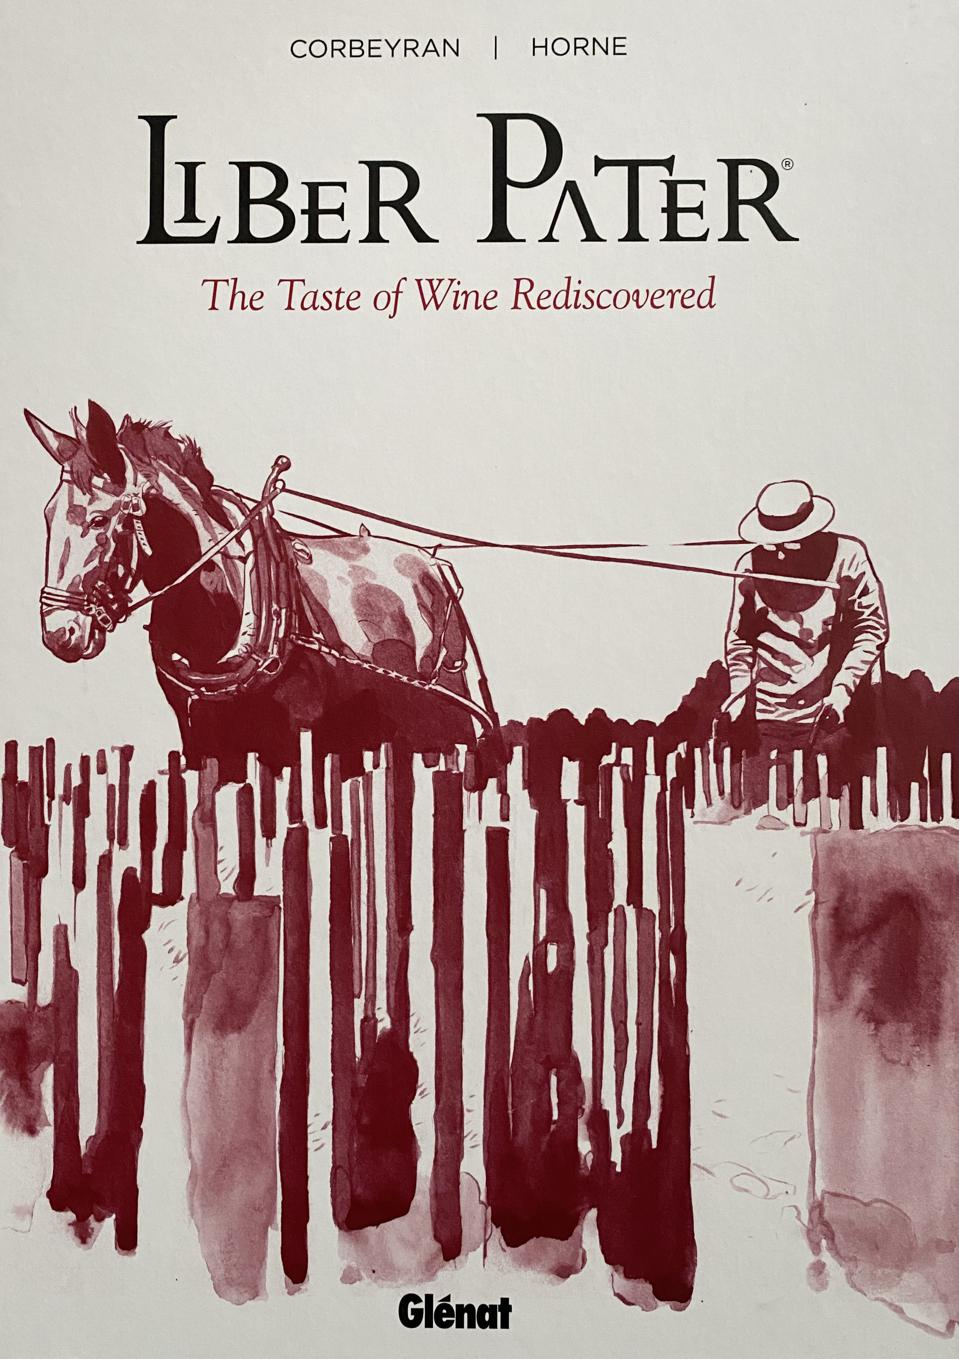 Cover of book showing horse and plowman